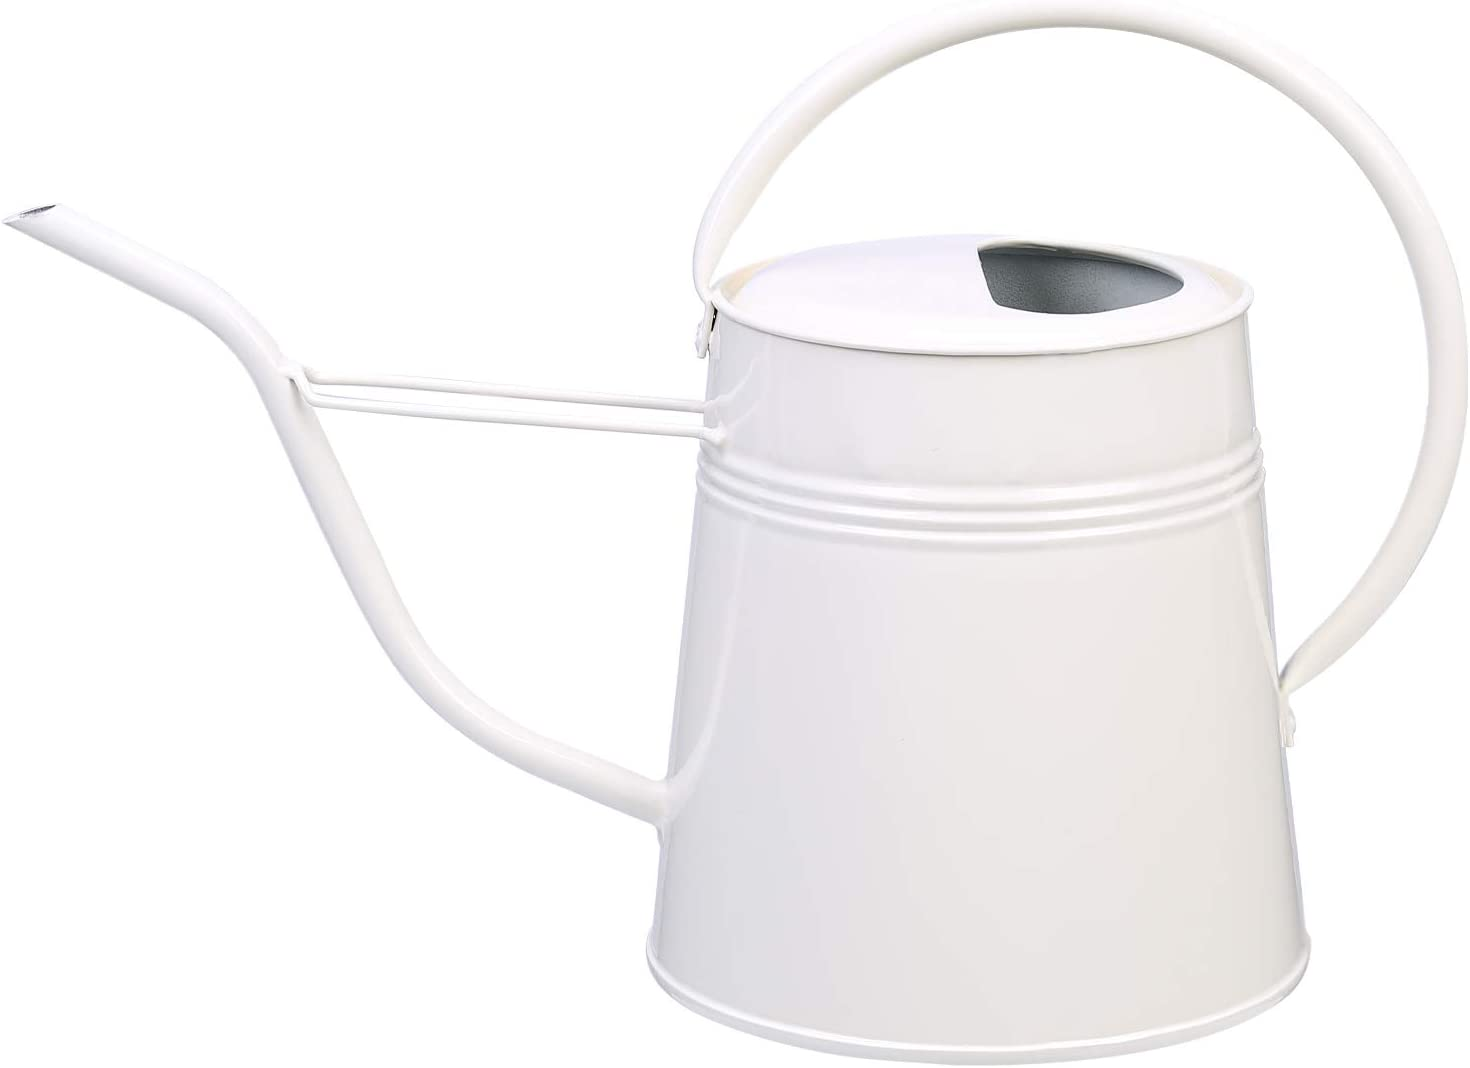 Asvert Long Spout Watering Can Pot for Office Desk House Garden Indoor Outdoor Sprinkling Can for Plant Flower with Comfort Handle 0.61-Gallon(Milky White)